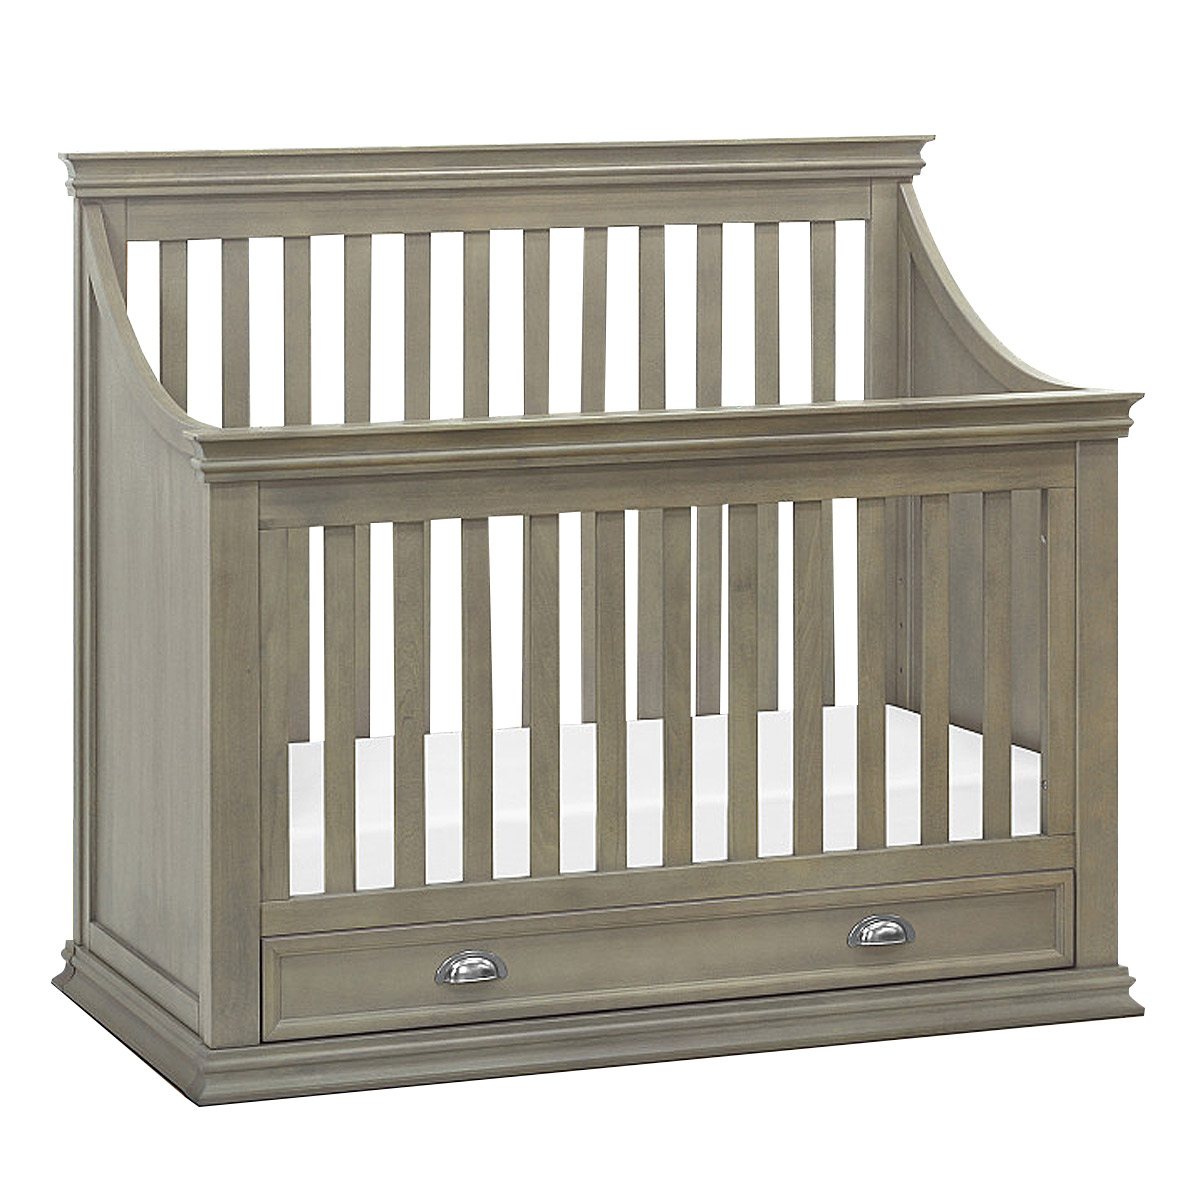 franklin and ben mason 4-in-1 convertible crib with toddler bed